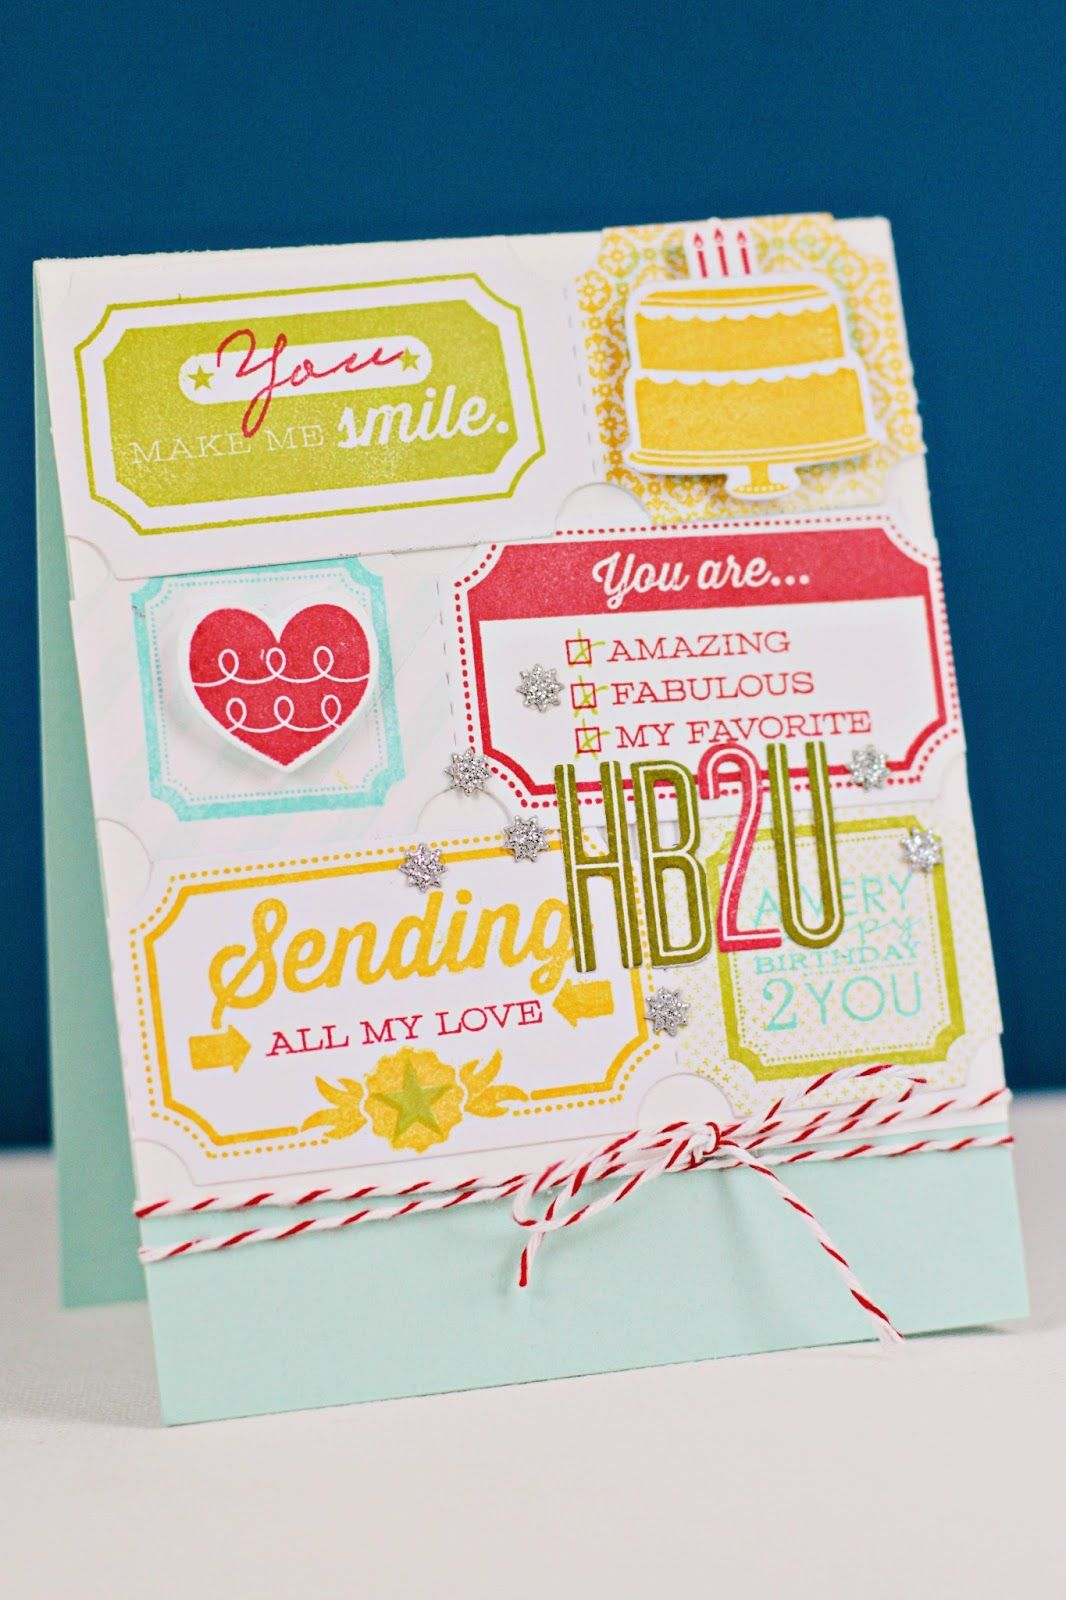 Hb2u card by erin lincoln for papertrey ink april 2013 pti hb2u card by erin lincoln for papertrey ink april 2013 m4hsunfo